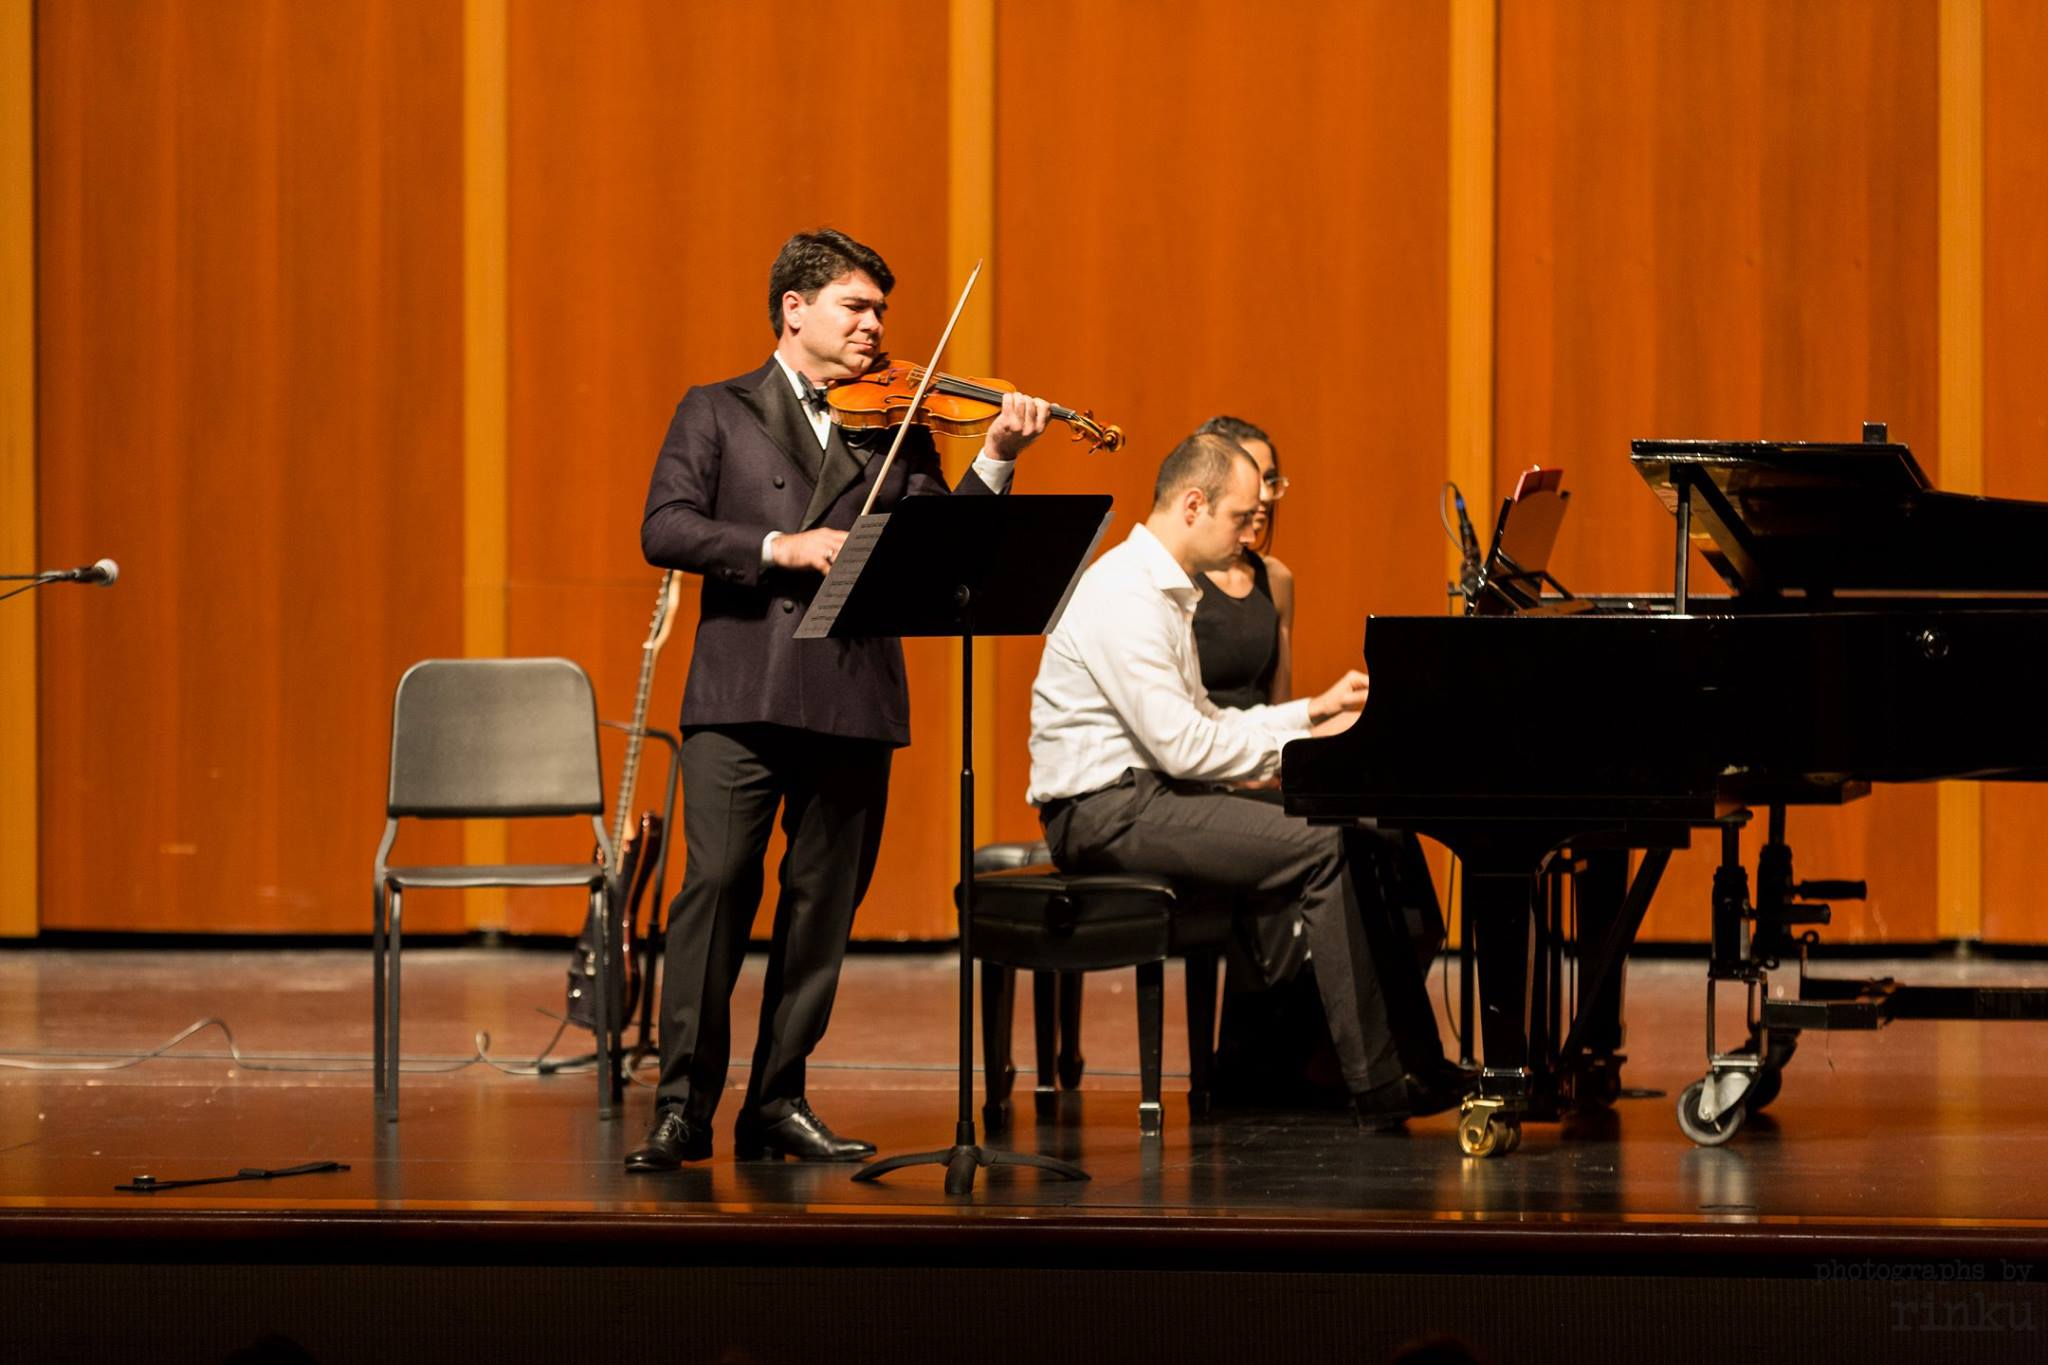 Zeljko Pavlovic and Krume – Faculty Concert 2018